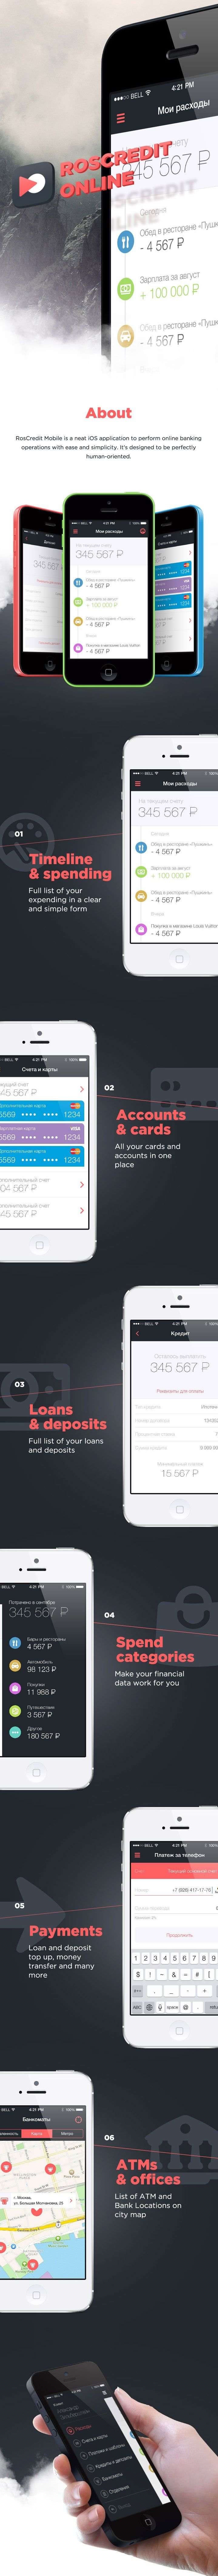 Roscredit Bank : mobile application design - #ux #ui